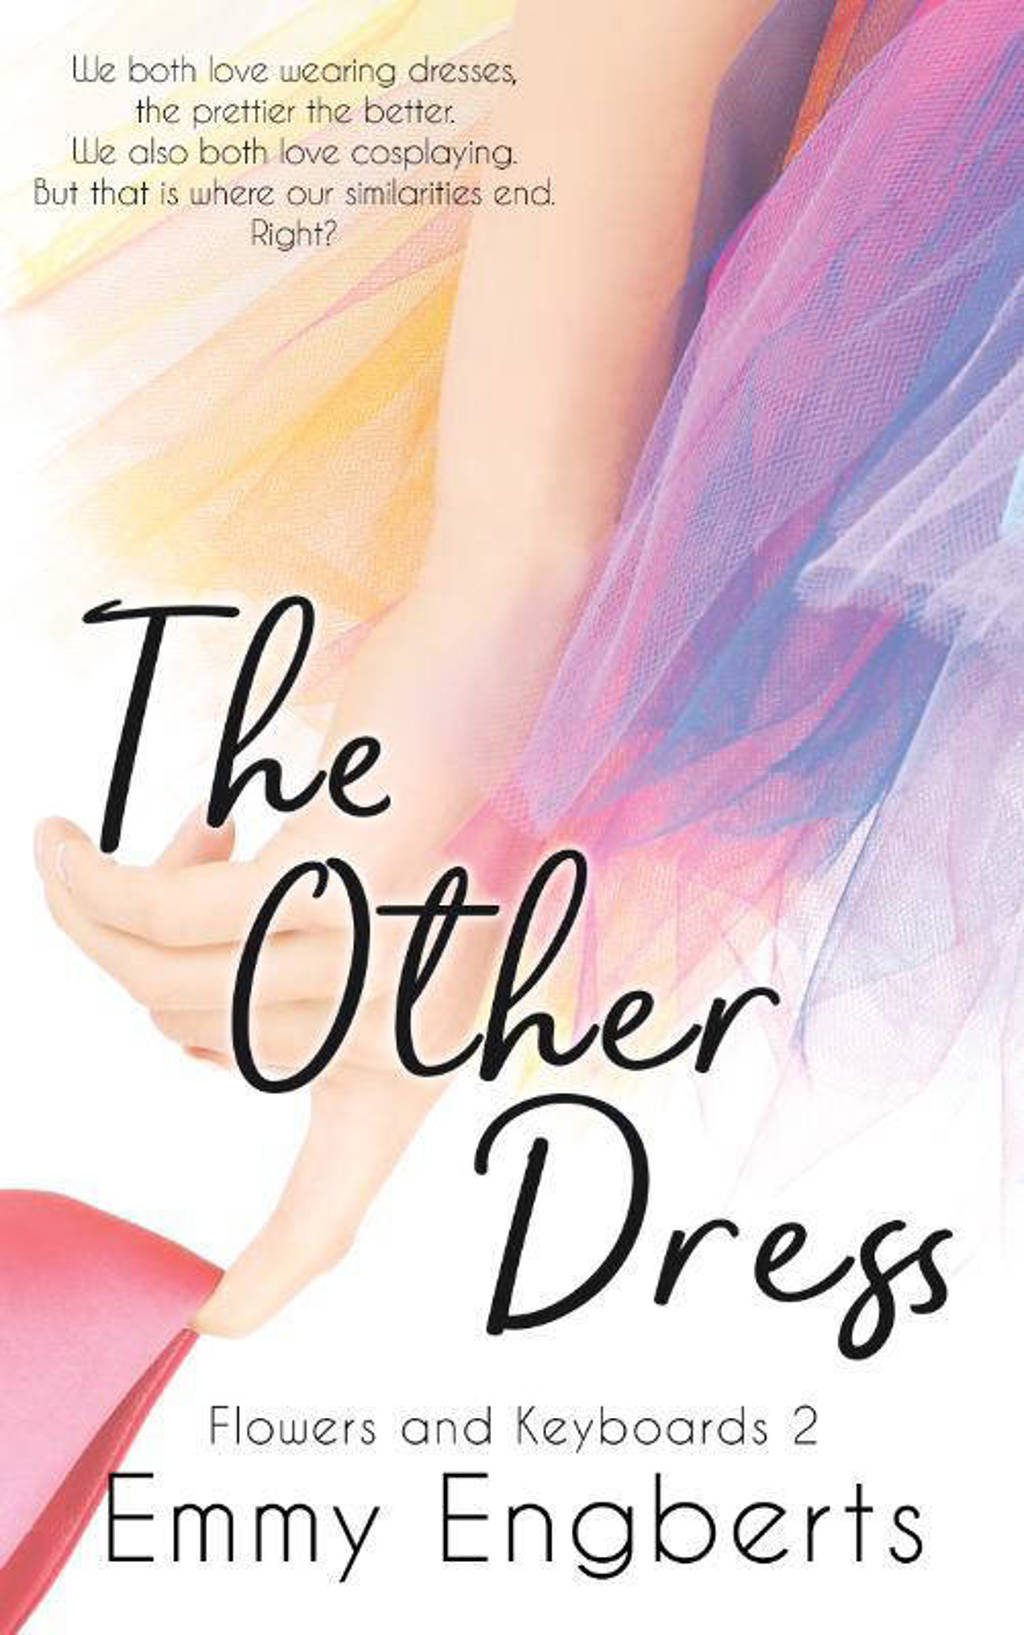 Flowers and Keyboards: The Other Dress - Emmy Engberts